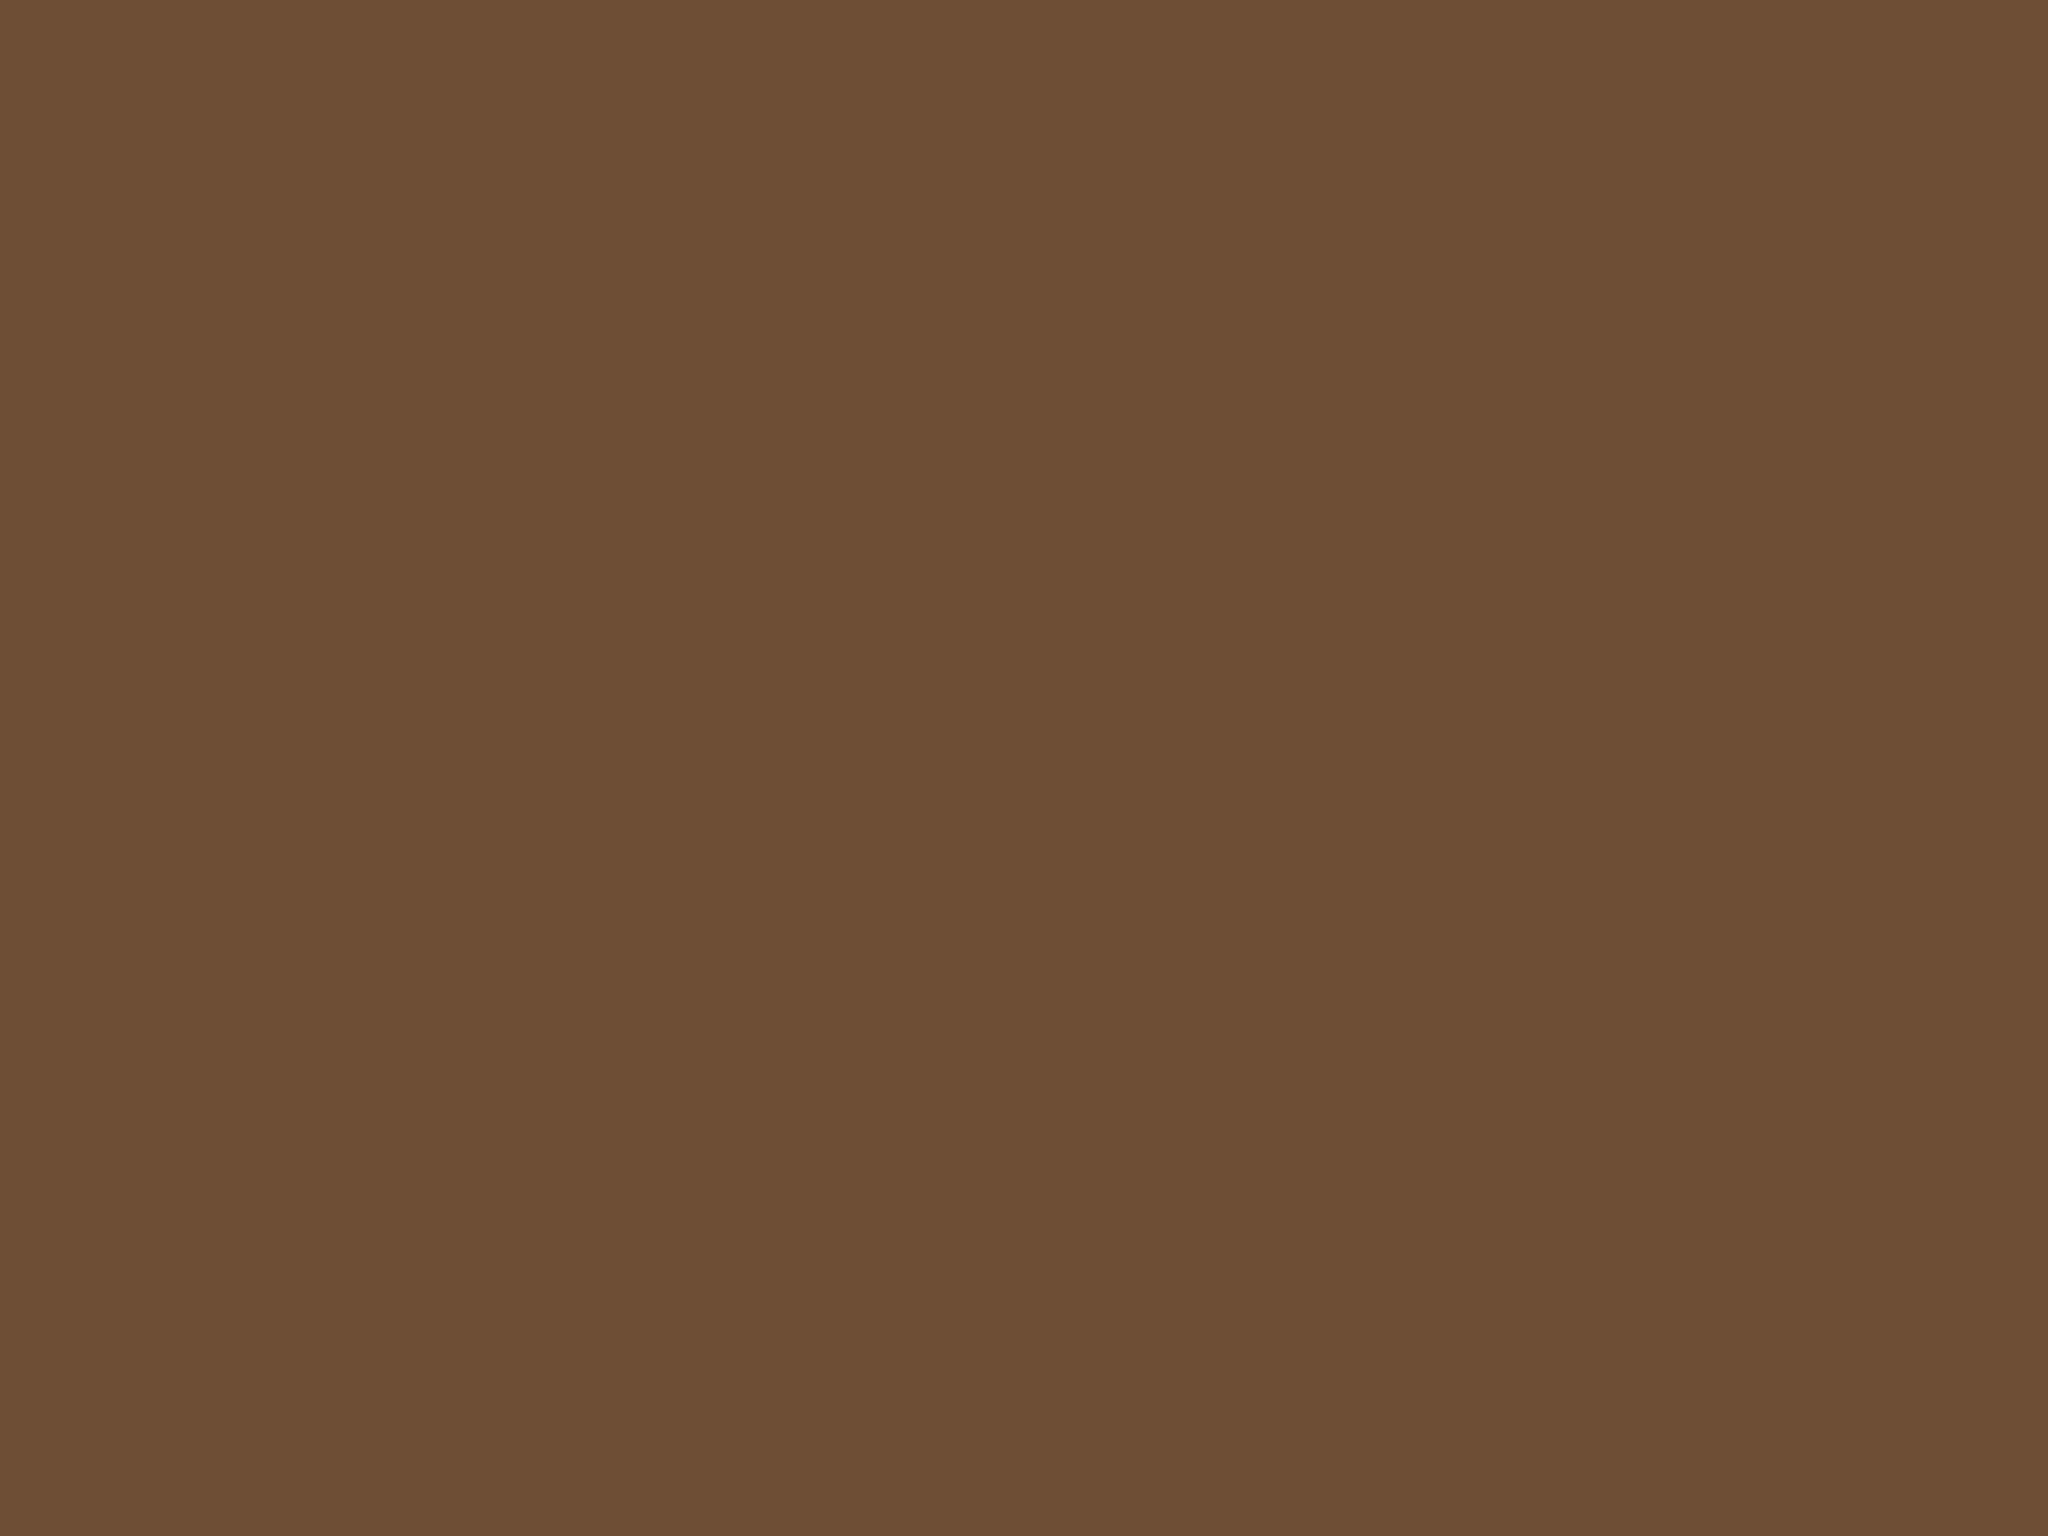 2048x1536 Tuscan Brown Solid Color Background